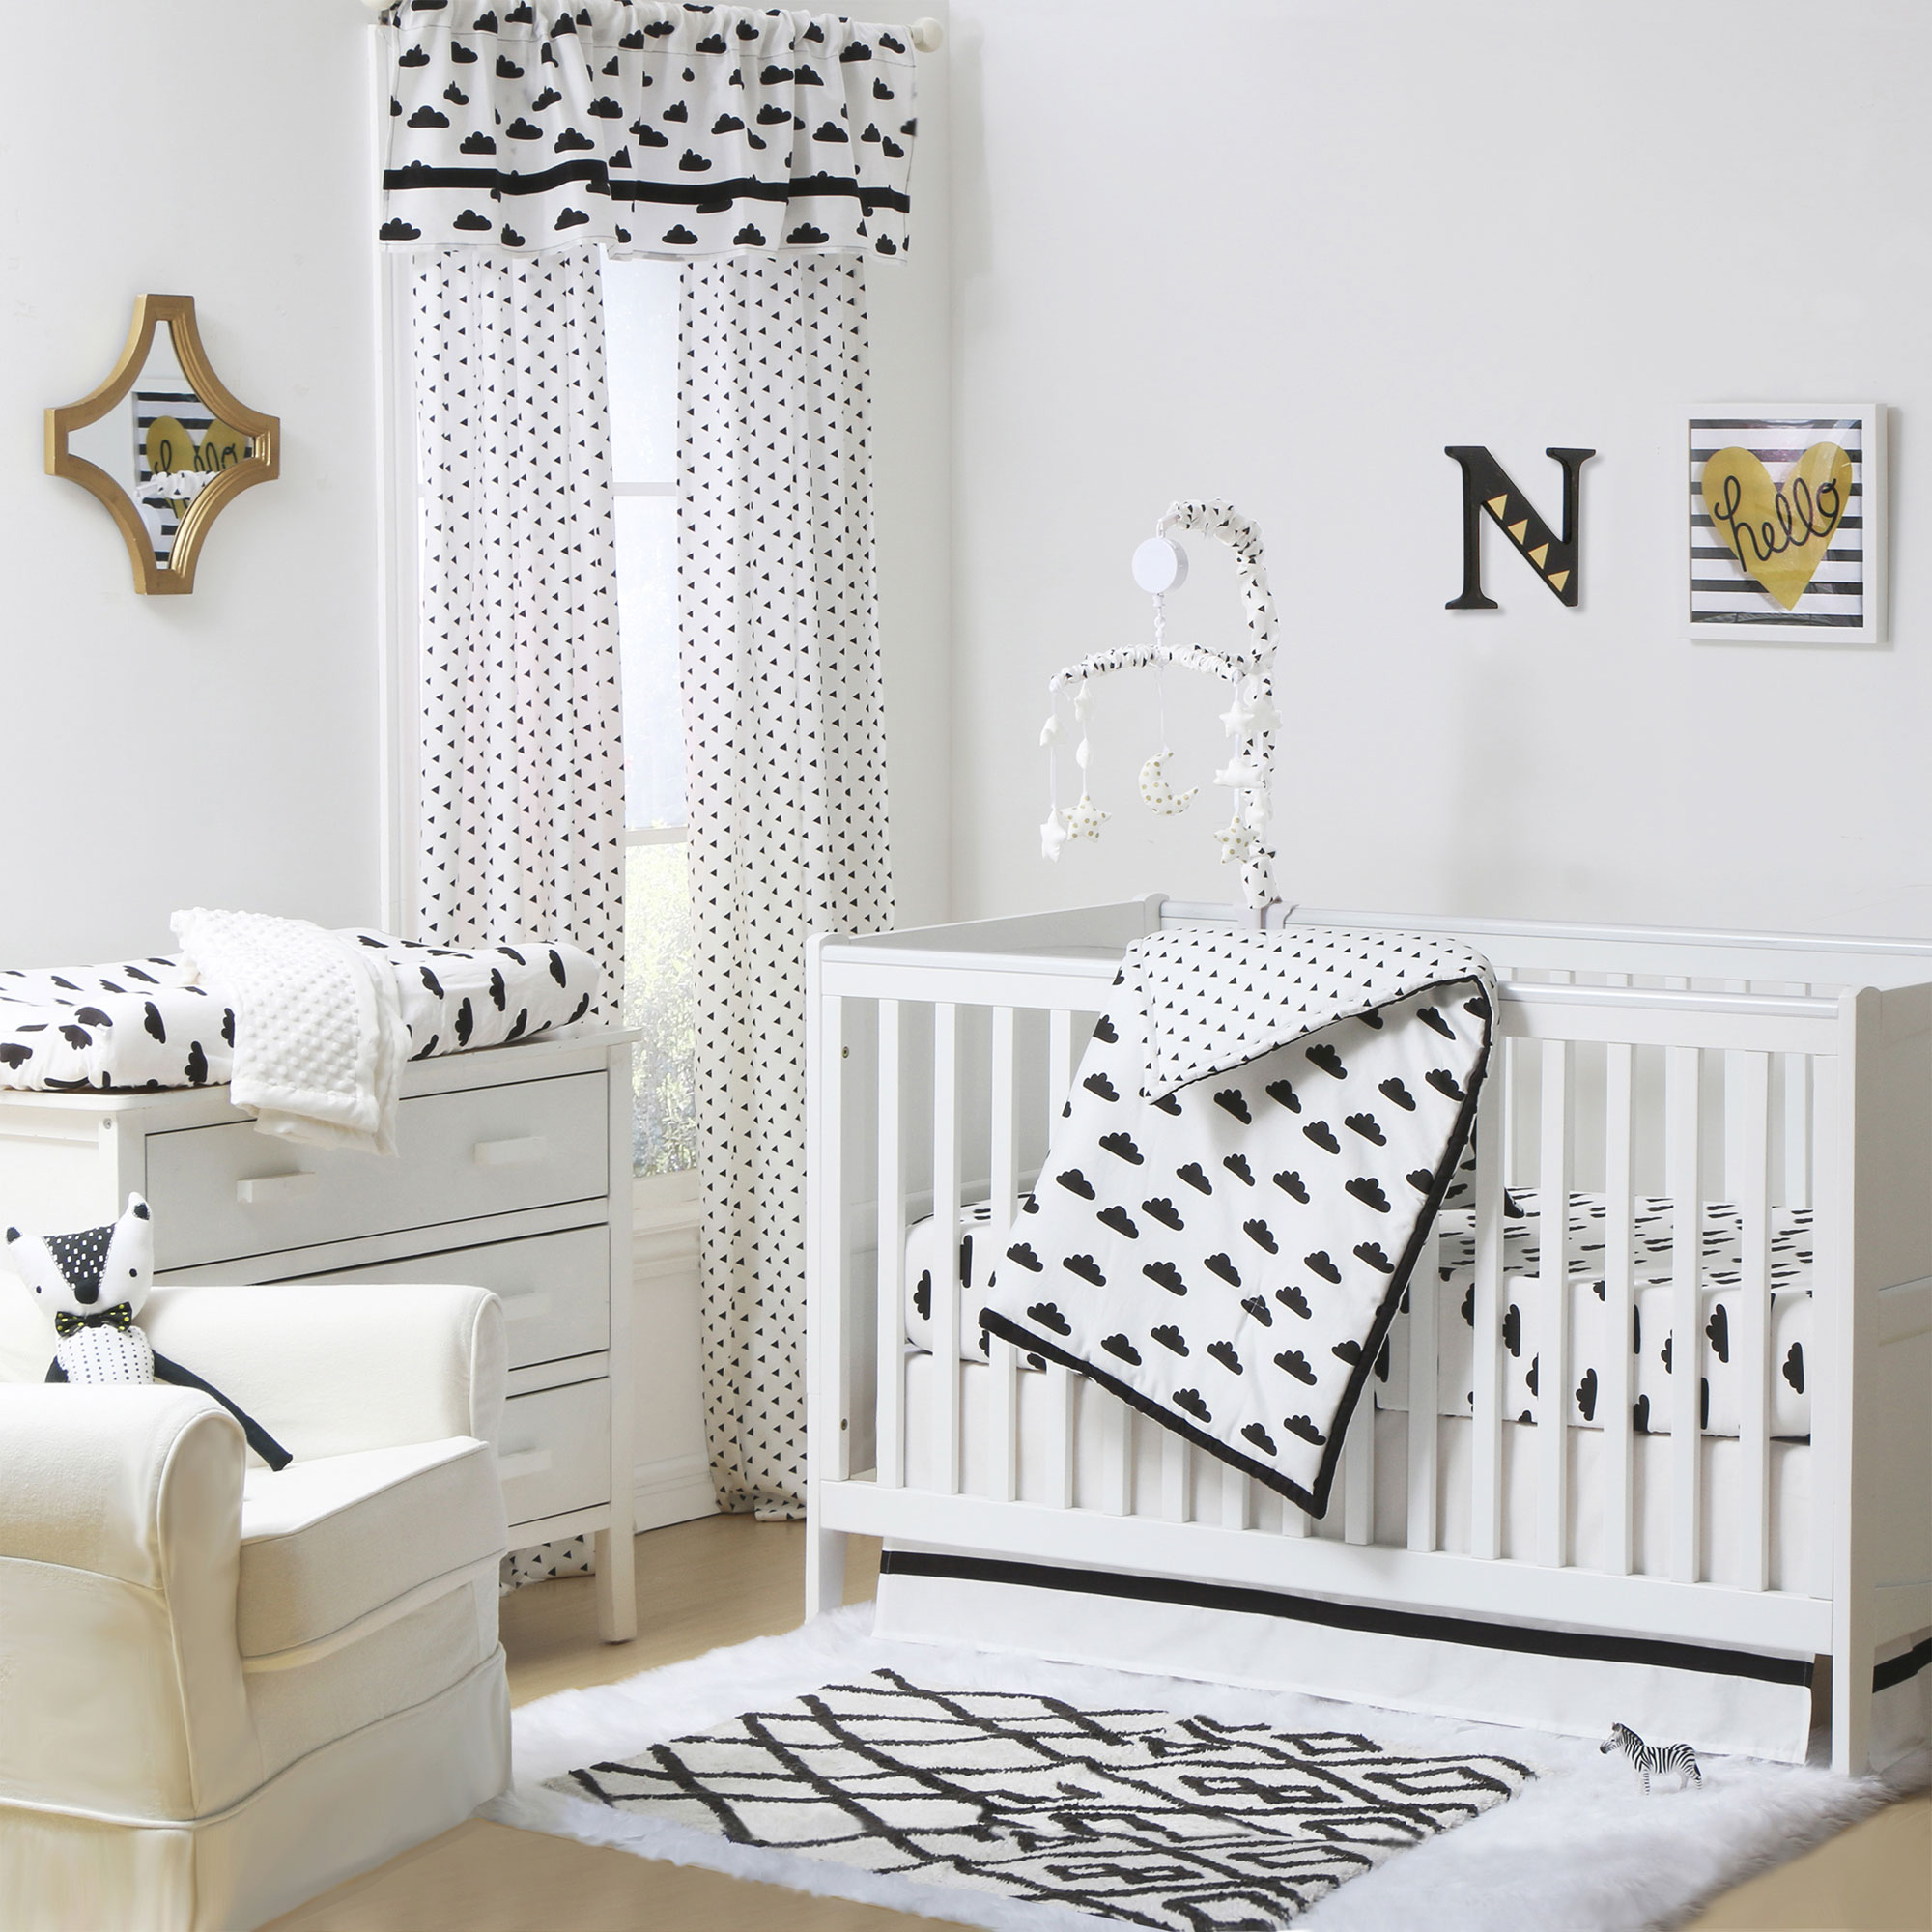 The Peanut Shell 3 Piece Baby Crib Bedding Set - Black and White Cloud Print - 100% Cotton Quilt, Crib Skirt and Sheet